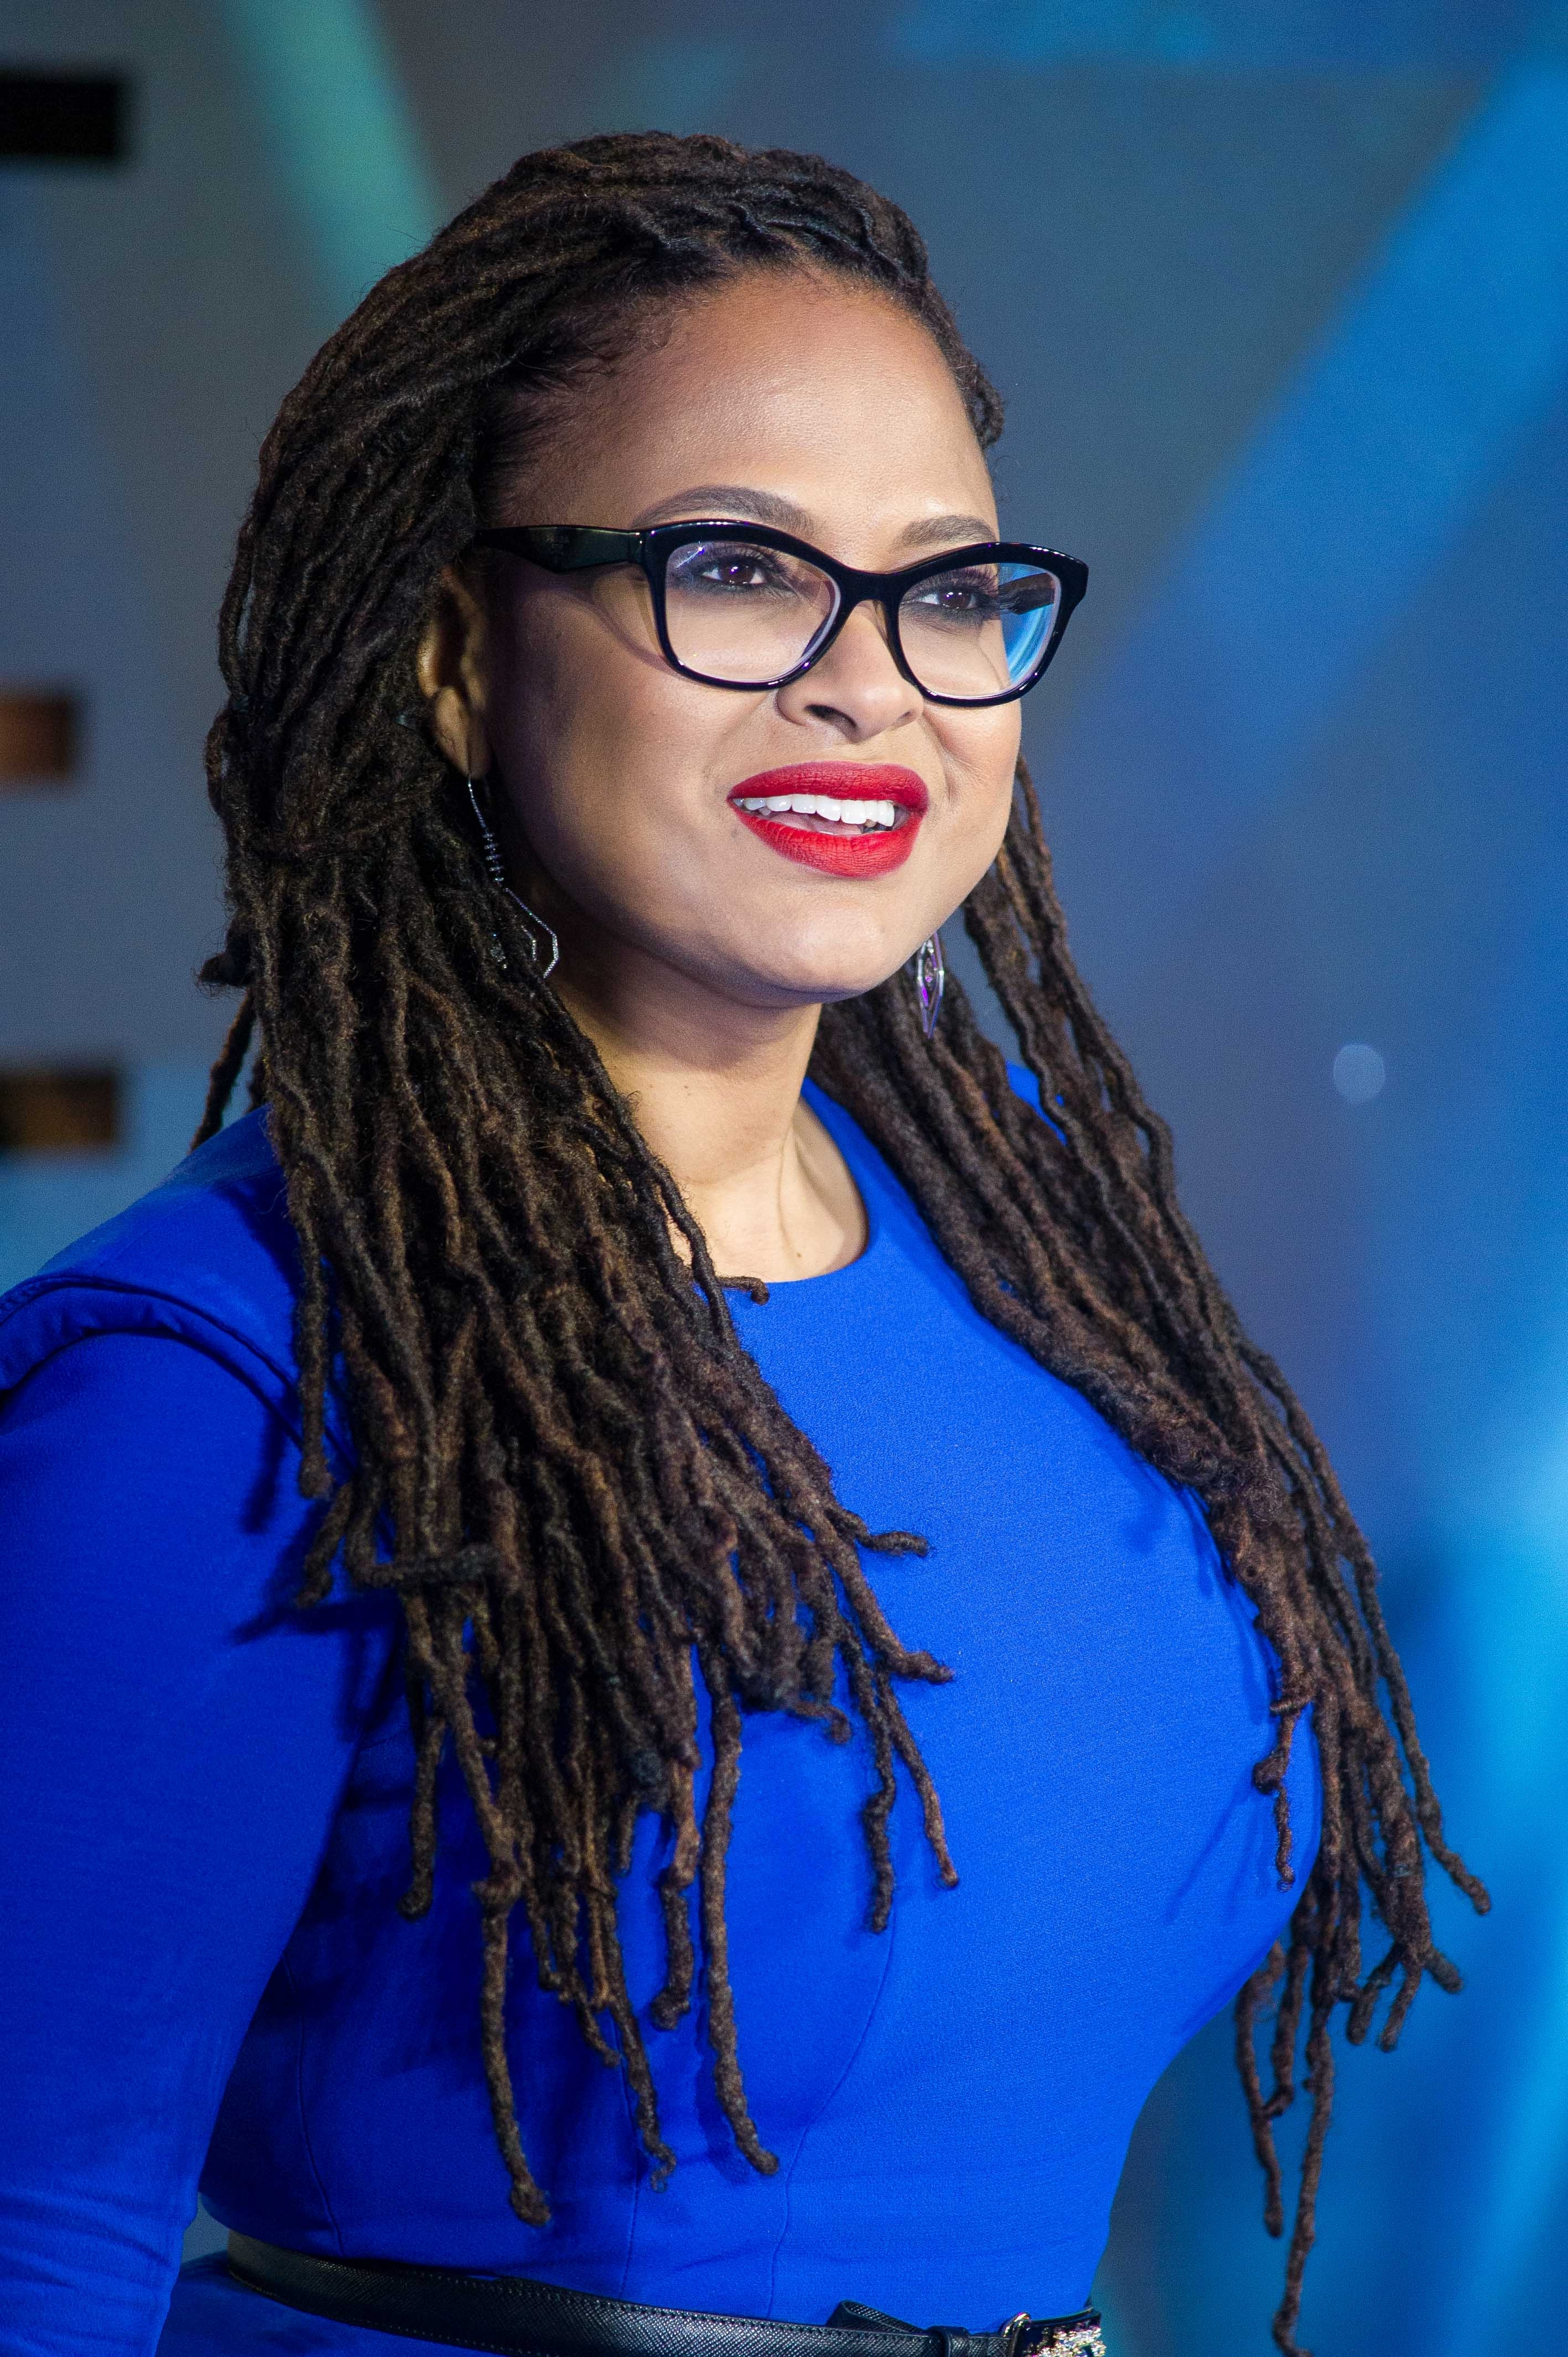 Ava Duvernay Tackles Police Shooting In Chicago With New CBS Series 'The Red Line'